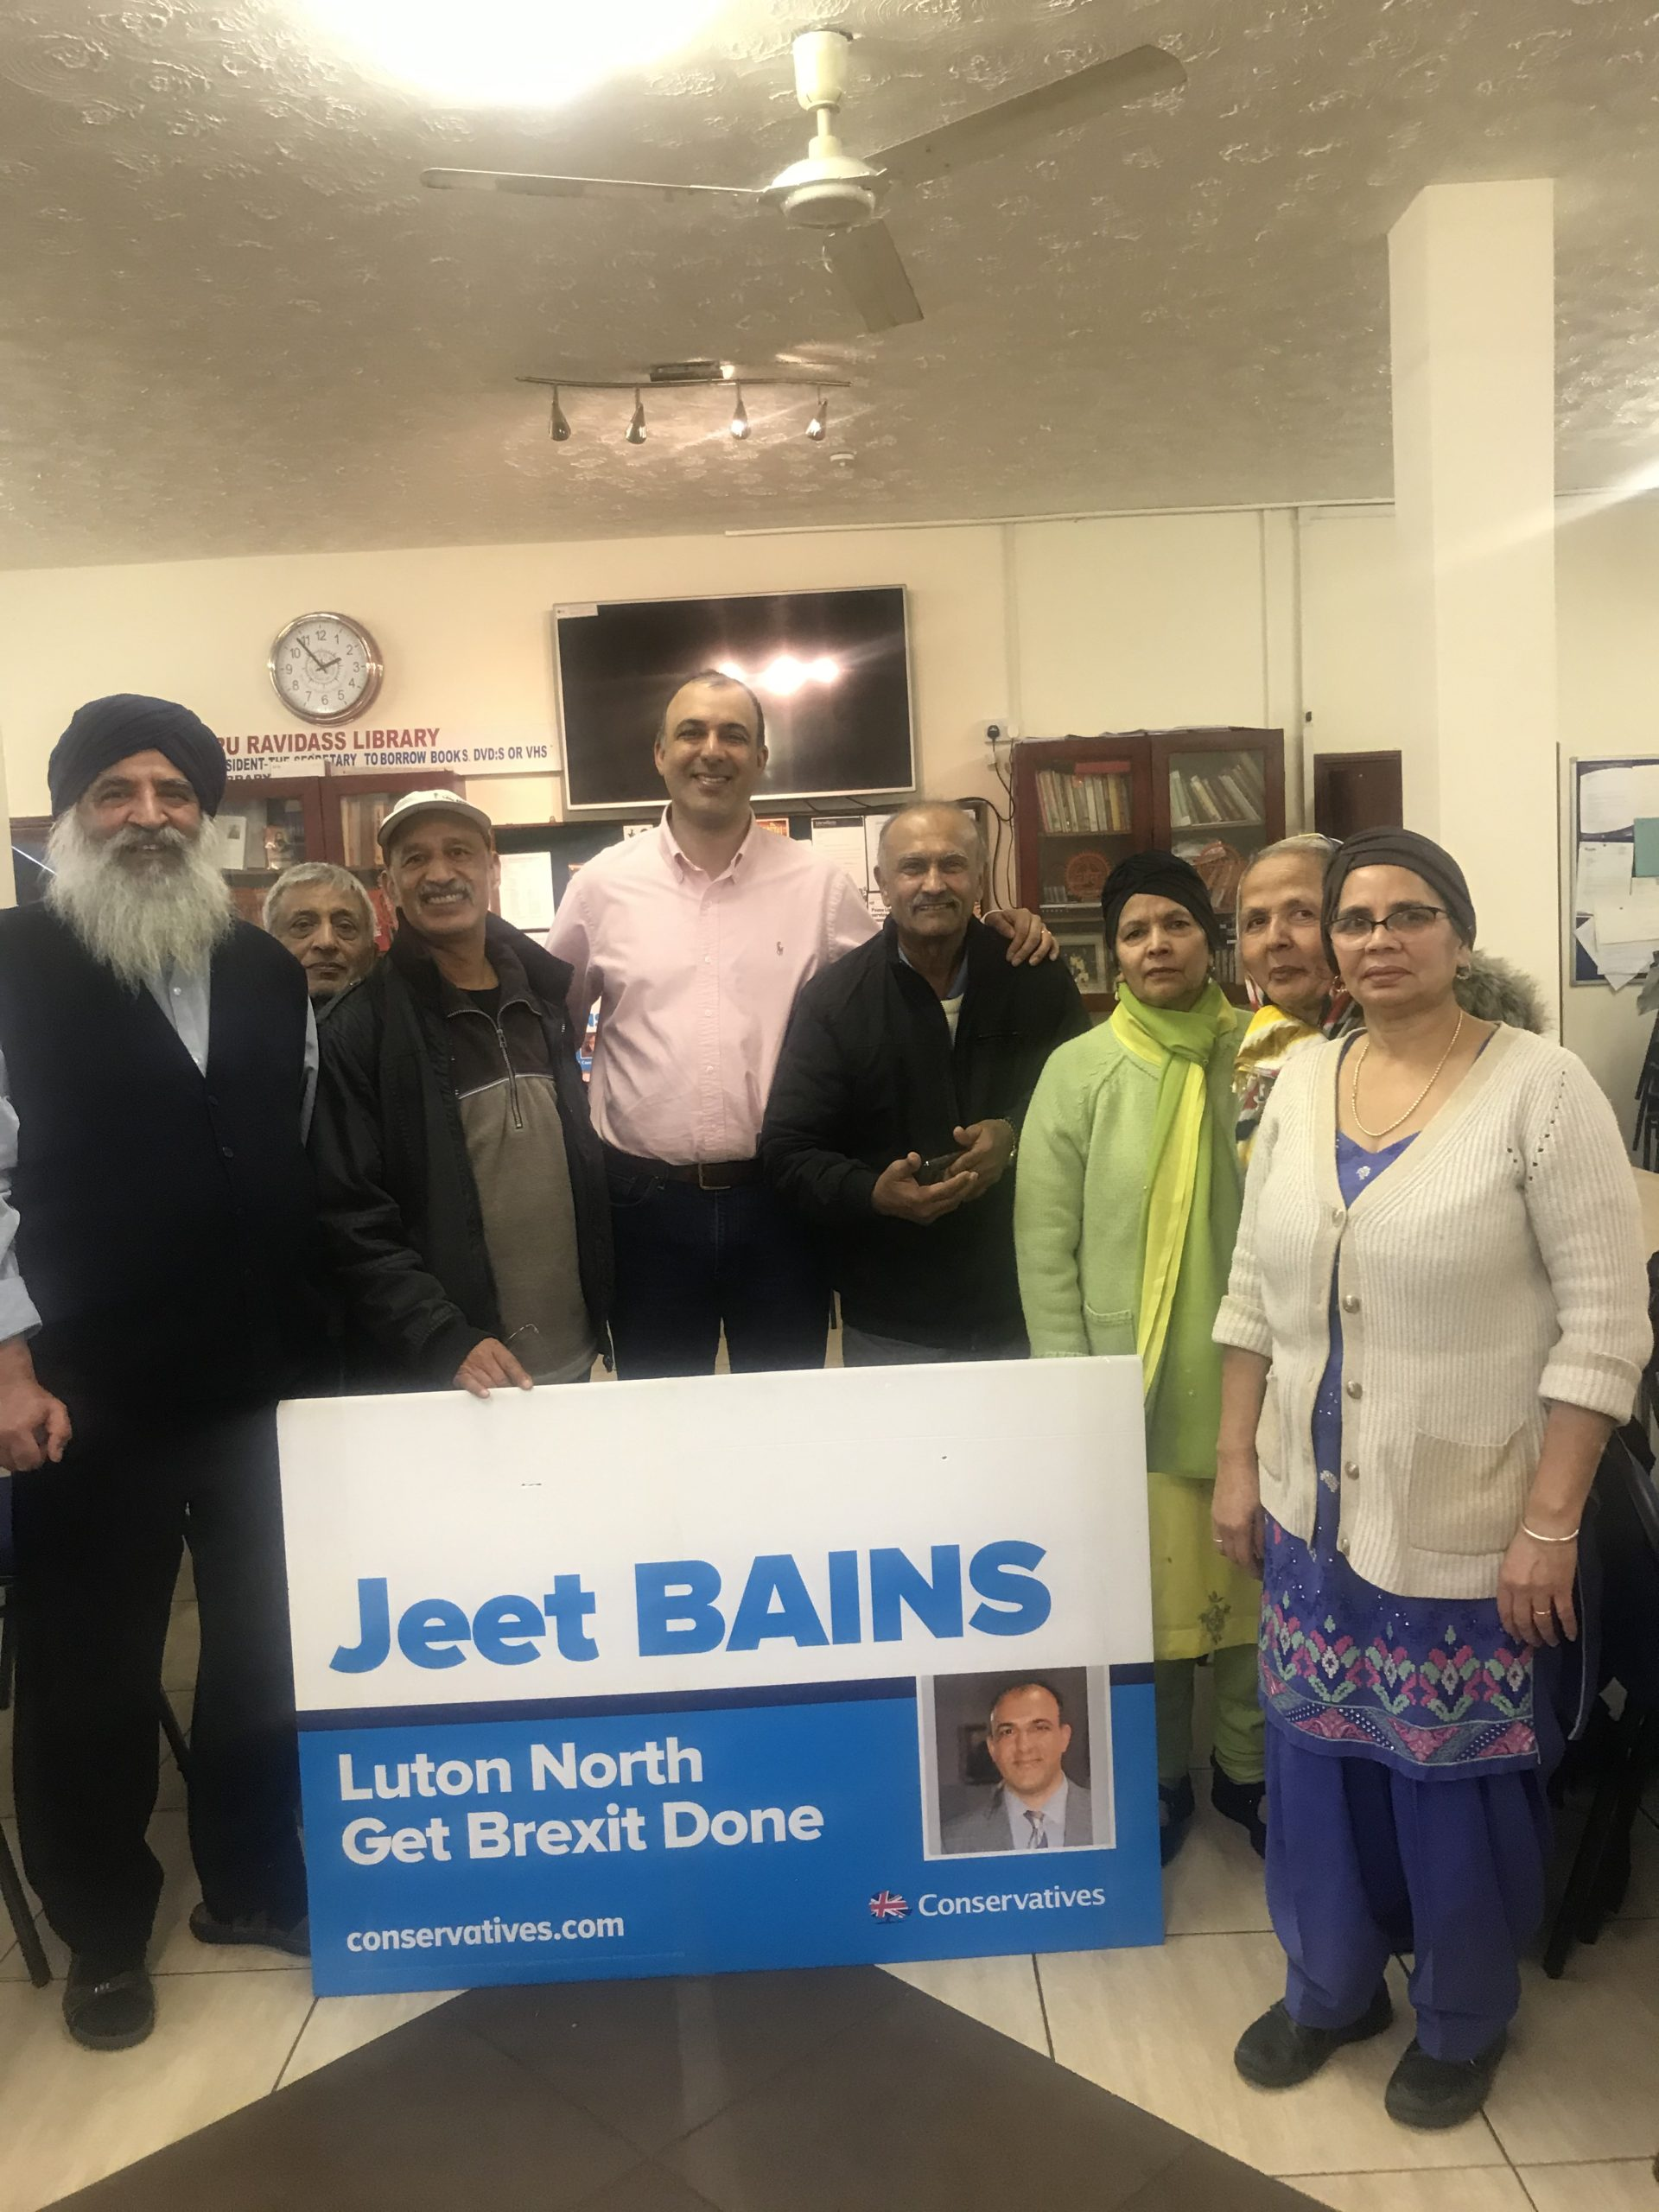 Interview with Councillor Jeet Bains, Conservative Candidate for Luton North GE2019